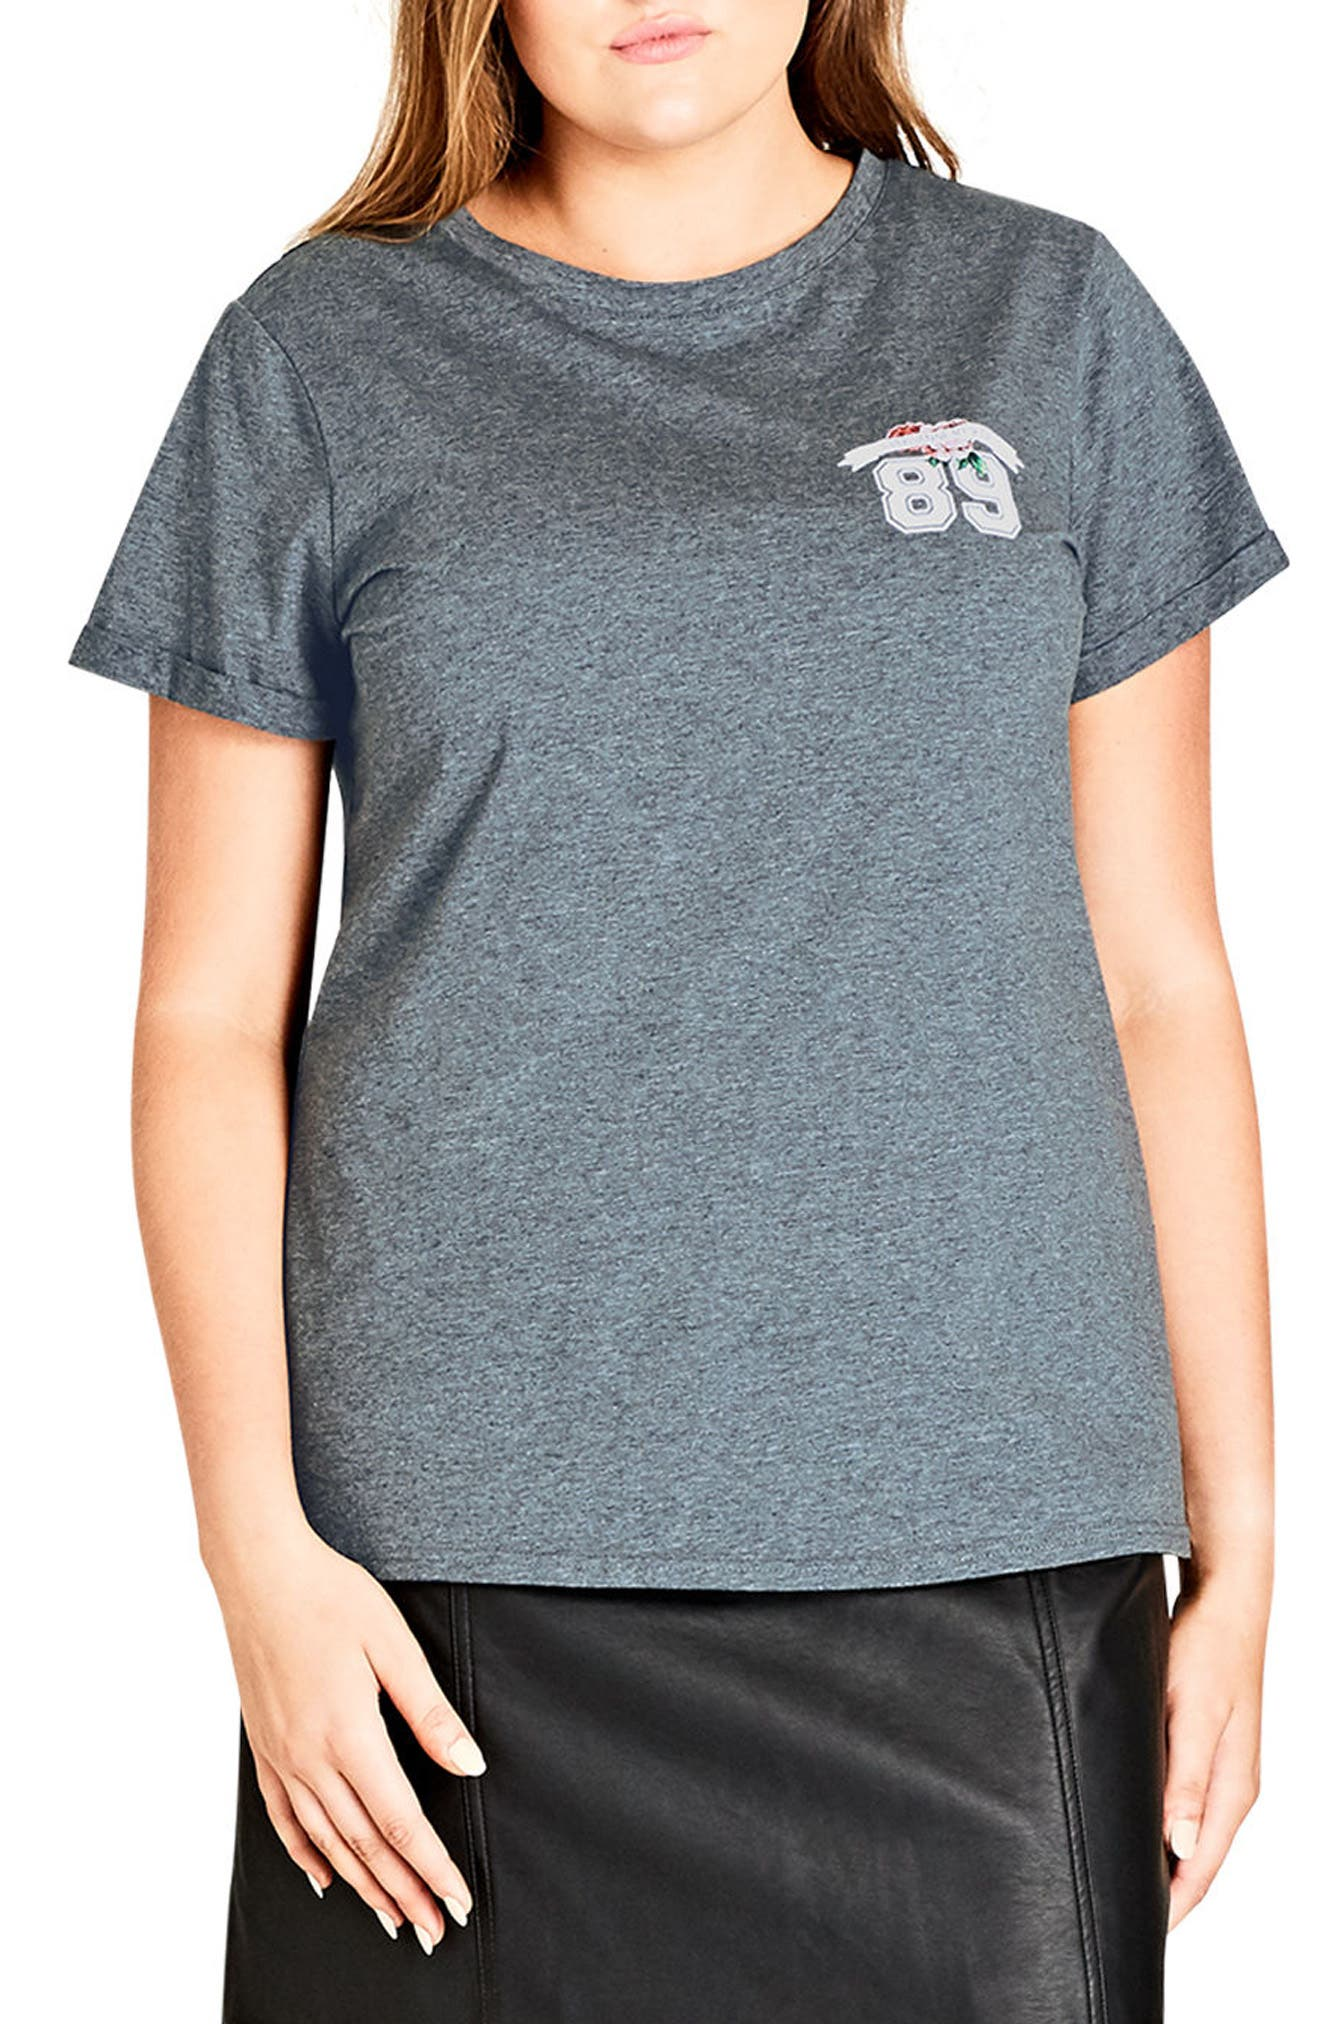 Premier Graphic Tee,                         Main,                         color, Charcoal